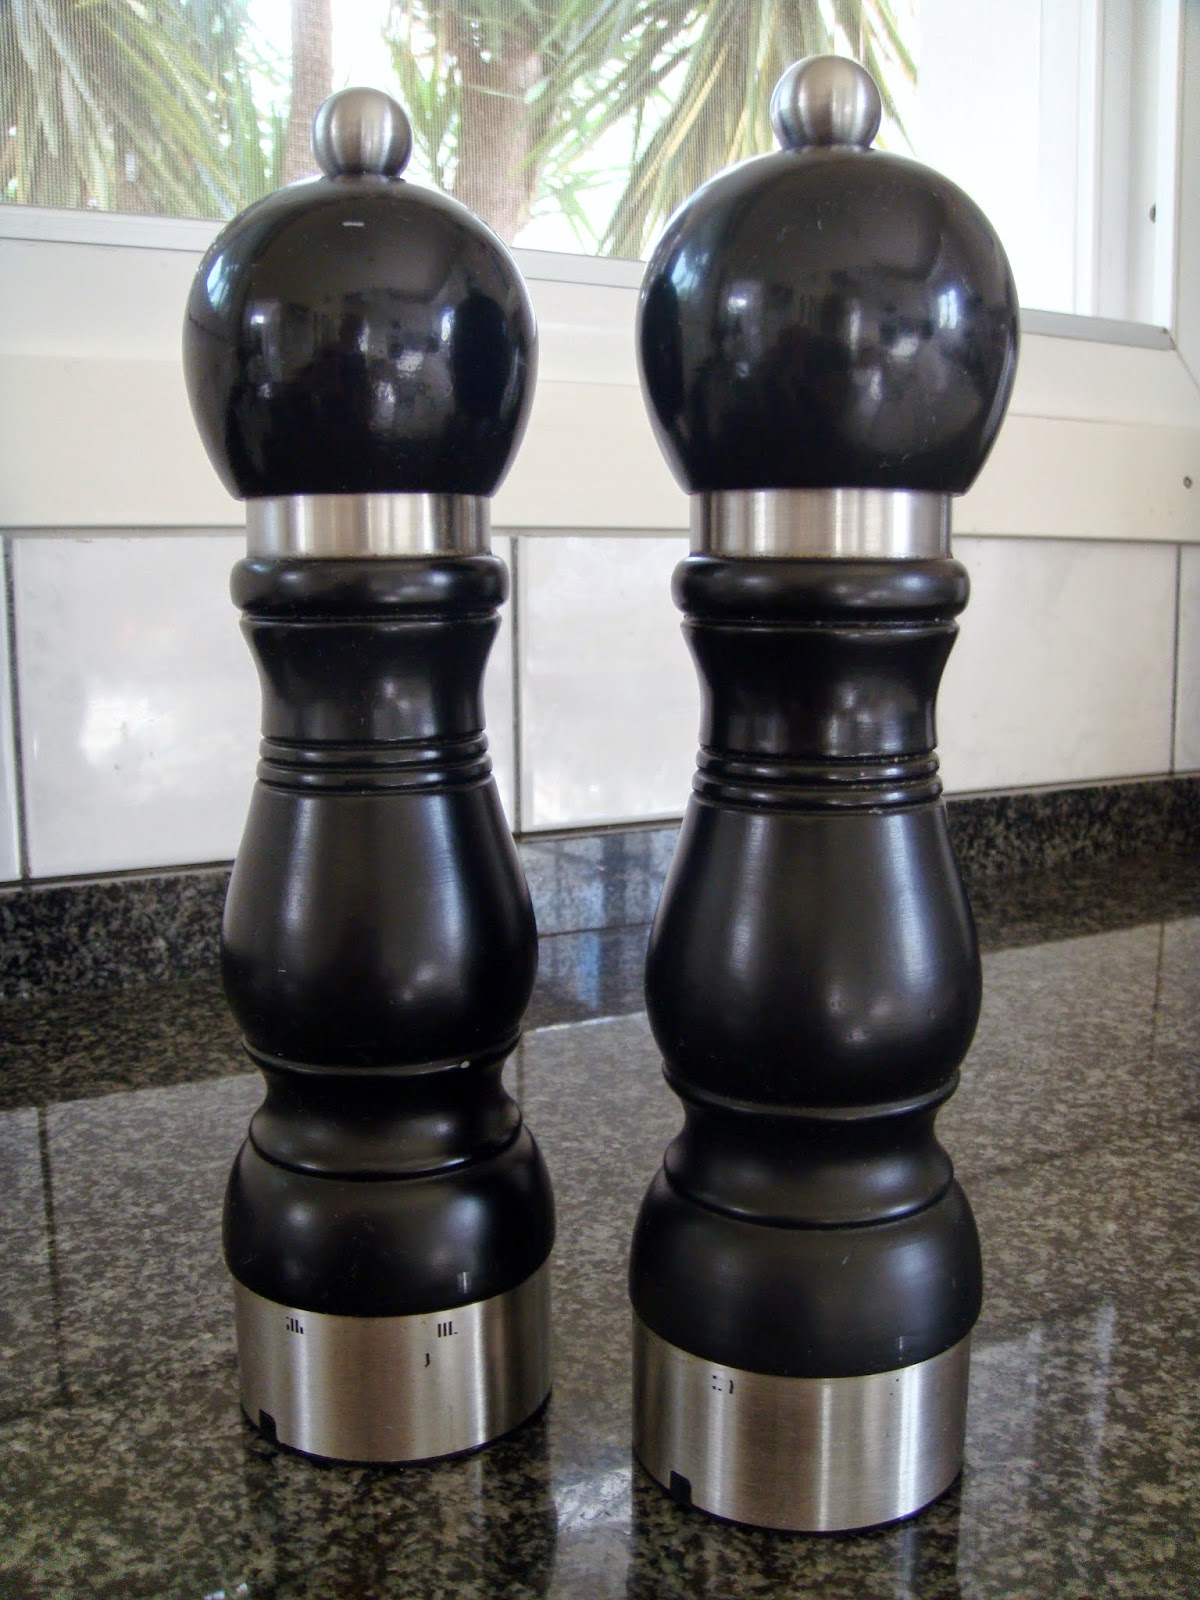 Peugeot Salt & Pepper mills